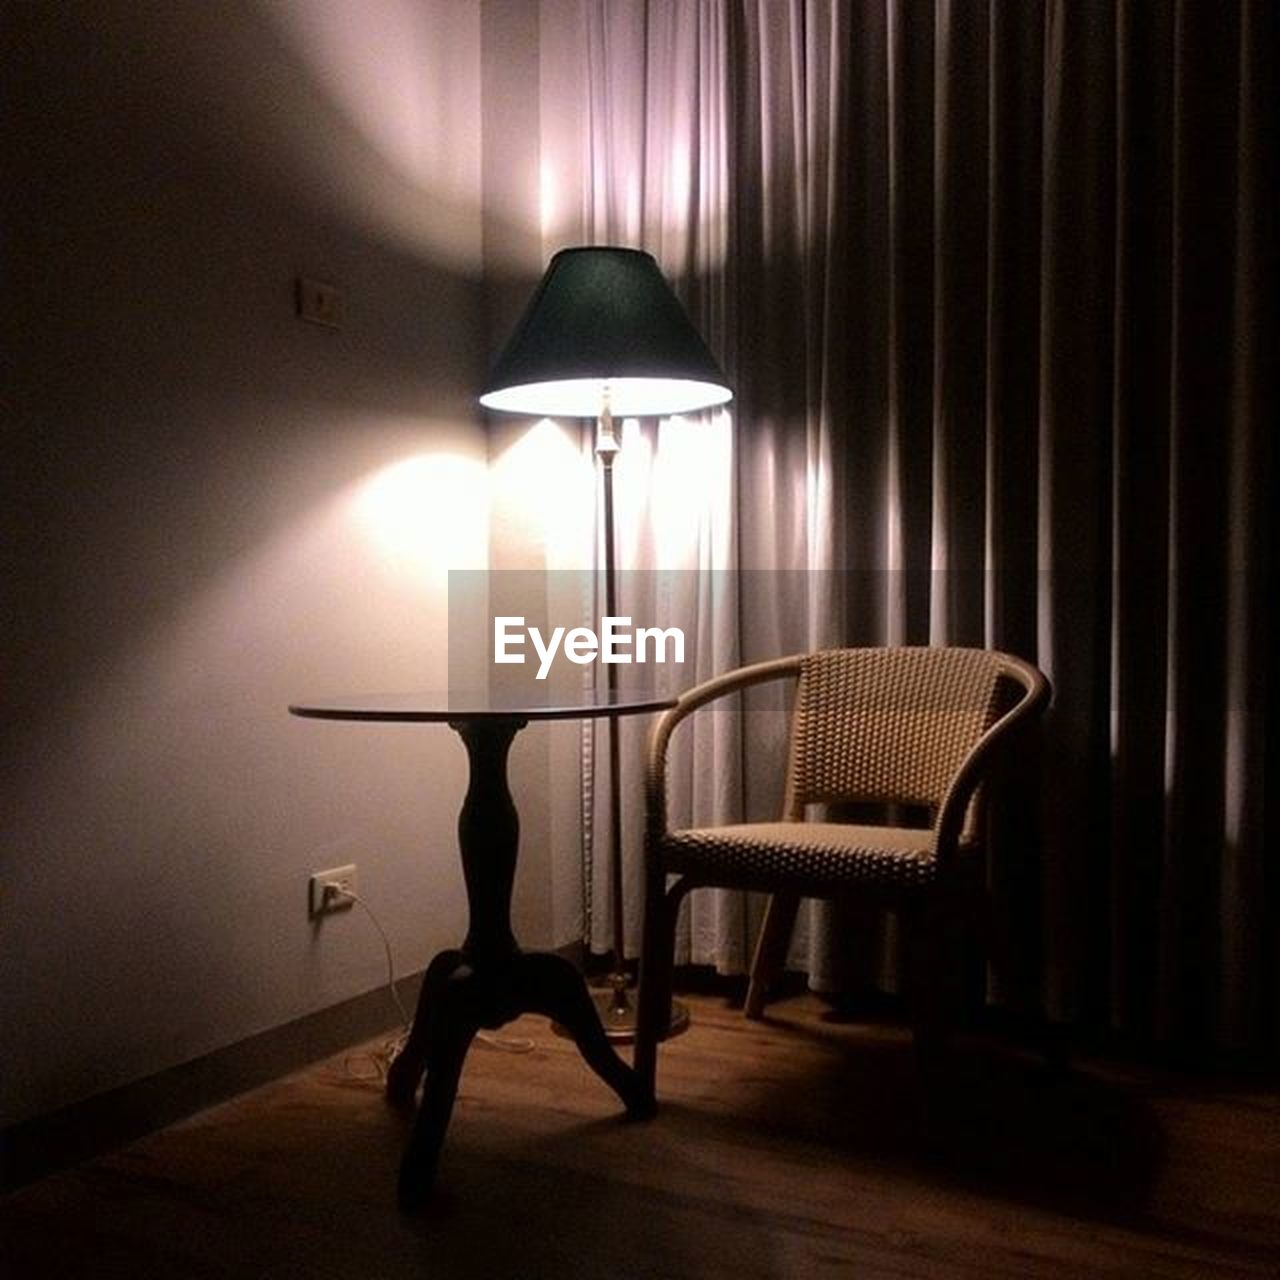 illuminated, lighting equipment, electric lamp, indoors, seat, light, chair, absence, no people, electric light, home interior, lamp shade, electricity, curtain, table, glowing, domestic room, wall, empty, furniture, side table